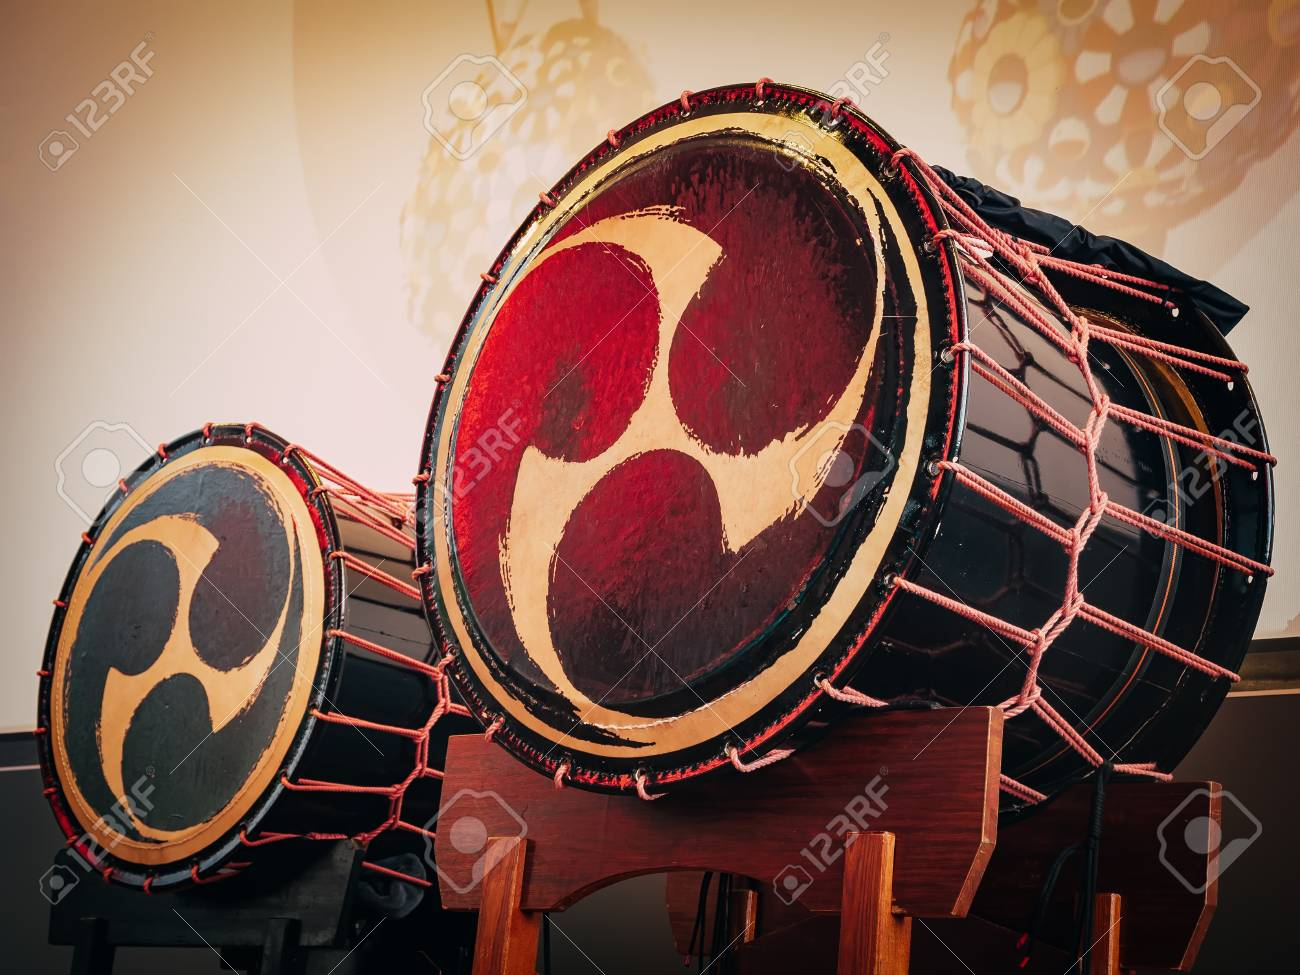 Taiko Drums O kedo On Scene Background Musical Instrument Of 1300x975